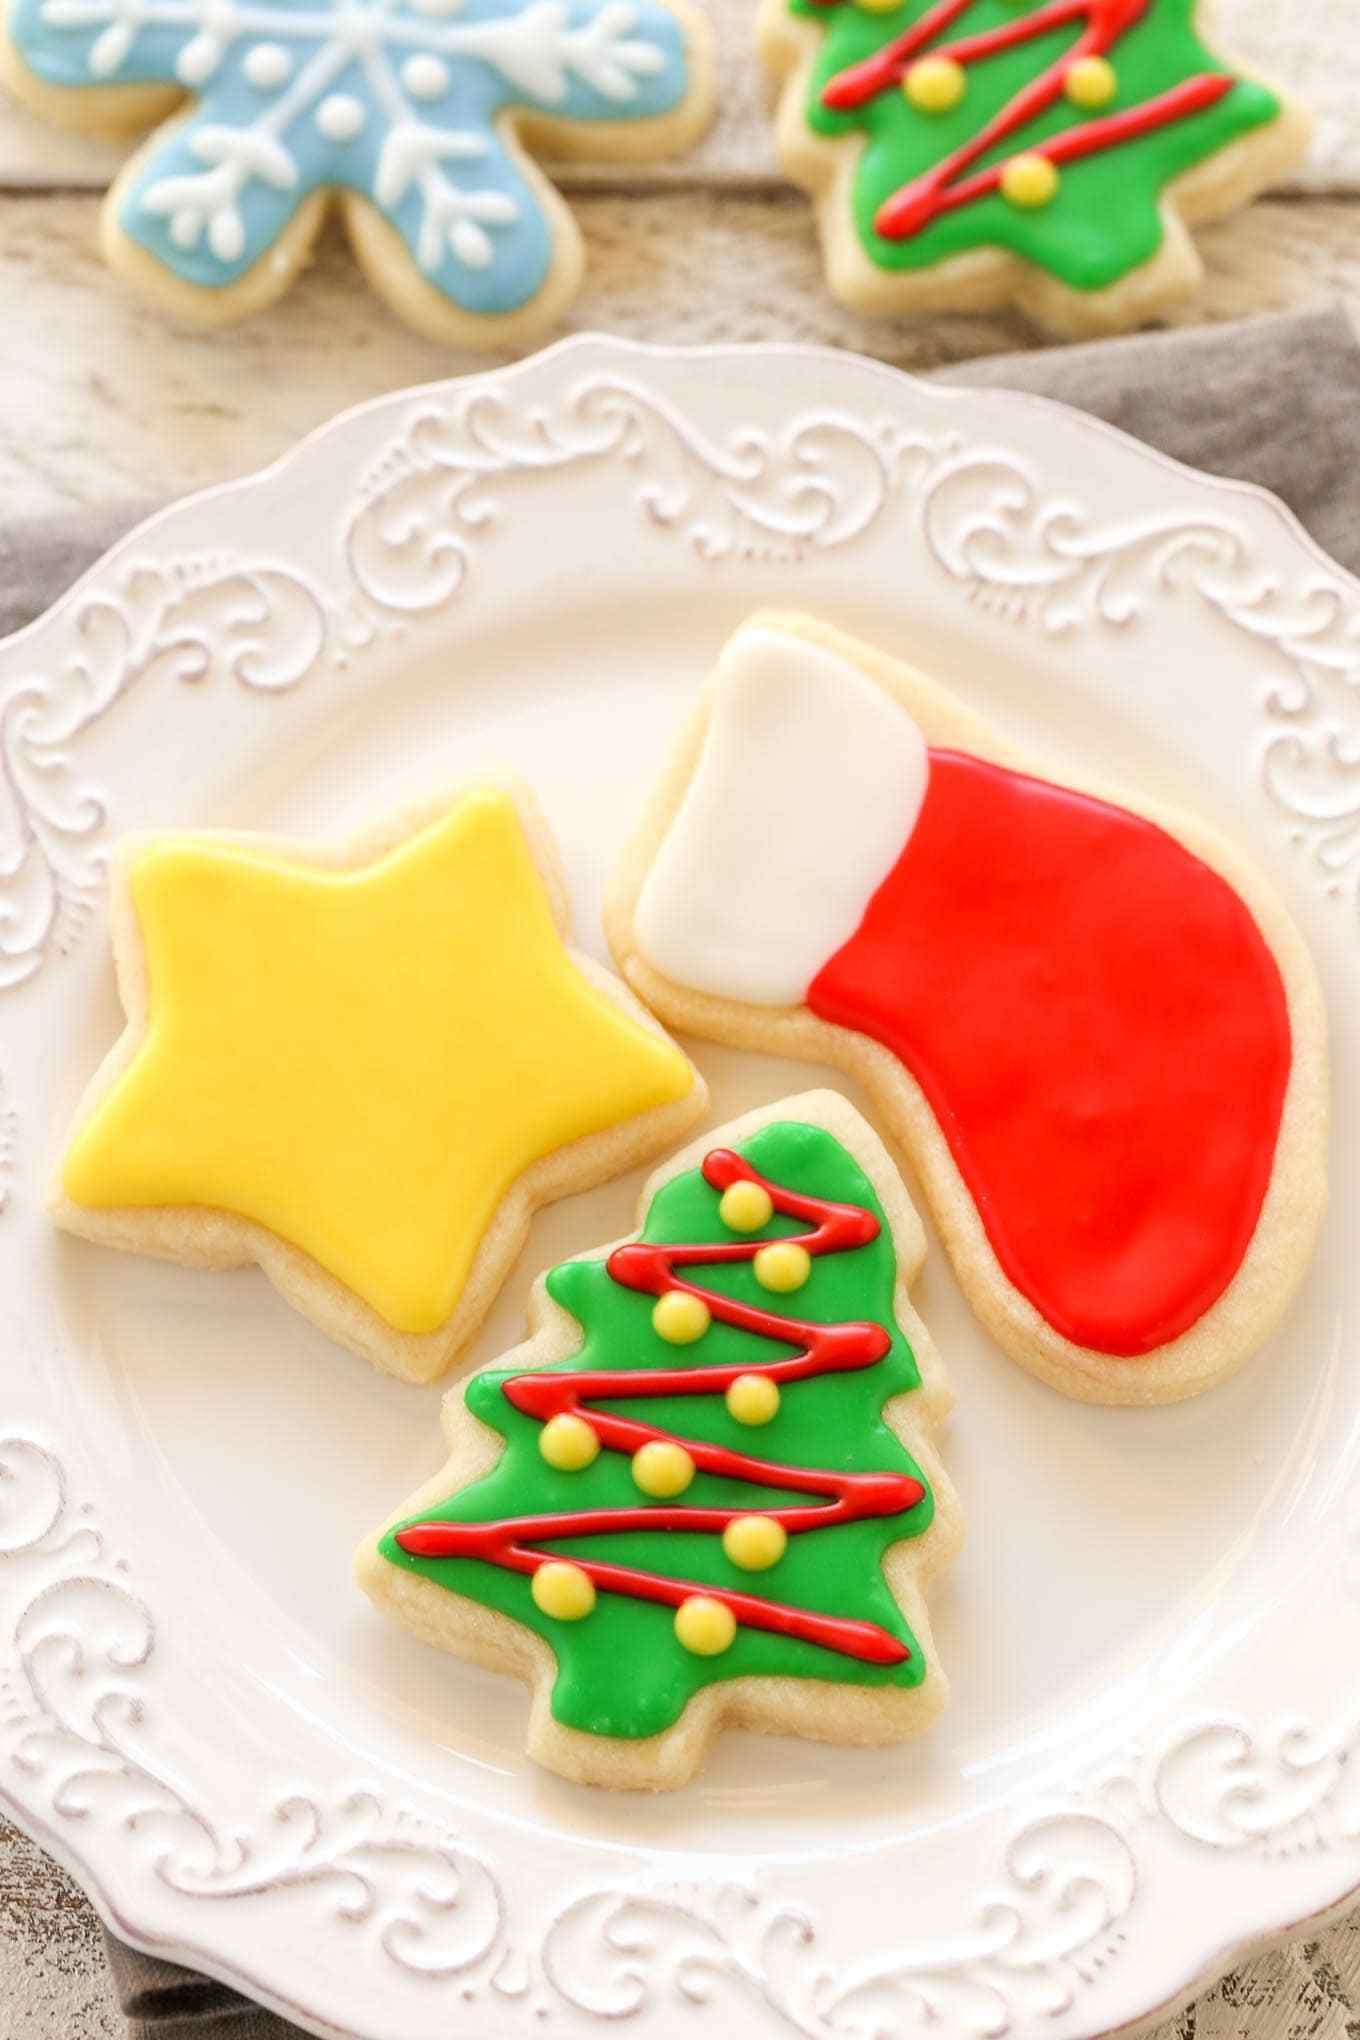 Soft Christmas Cookies Recipe  Soft Christmas Cut Out Sugar Cookies Live Well Bake ten